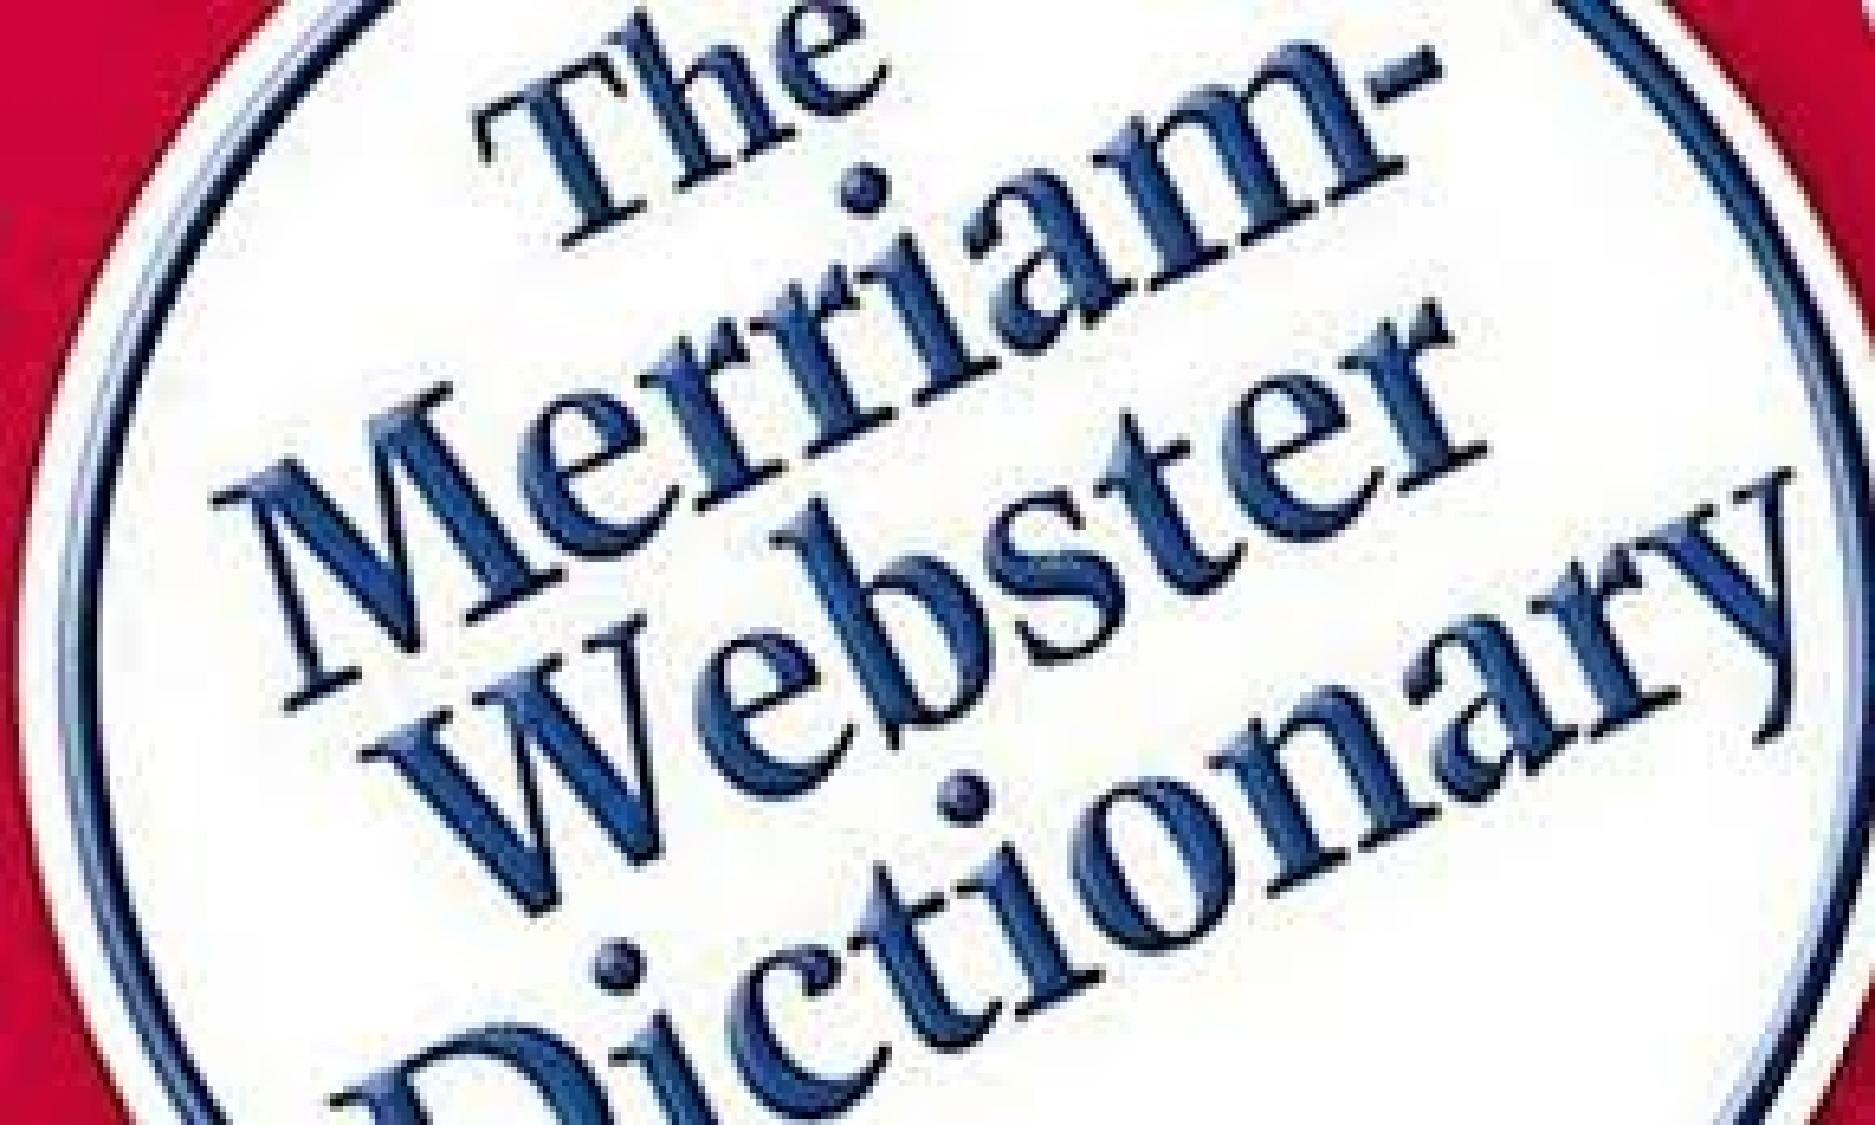 2013 pearlsofprofundity page 6 merriam webster dictionary cove